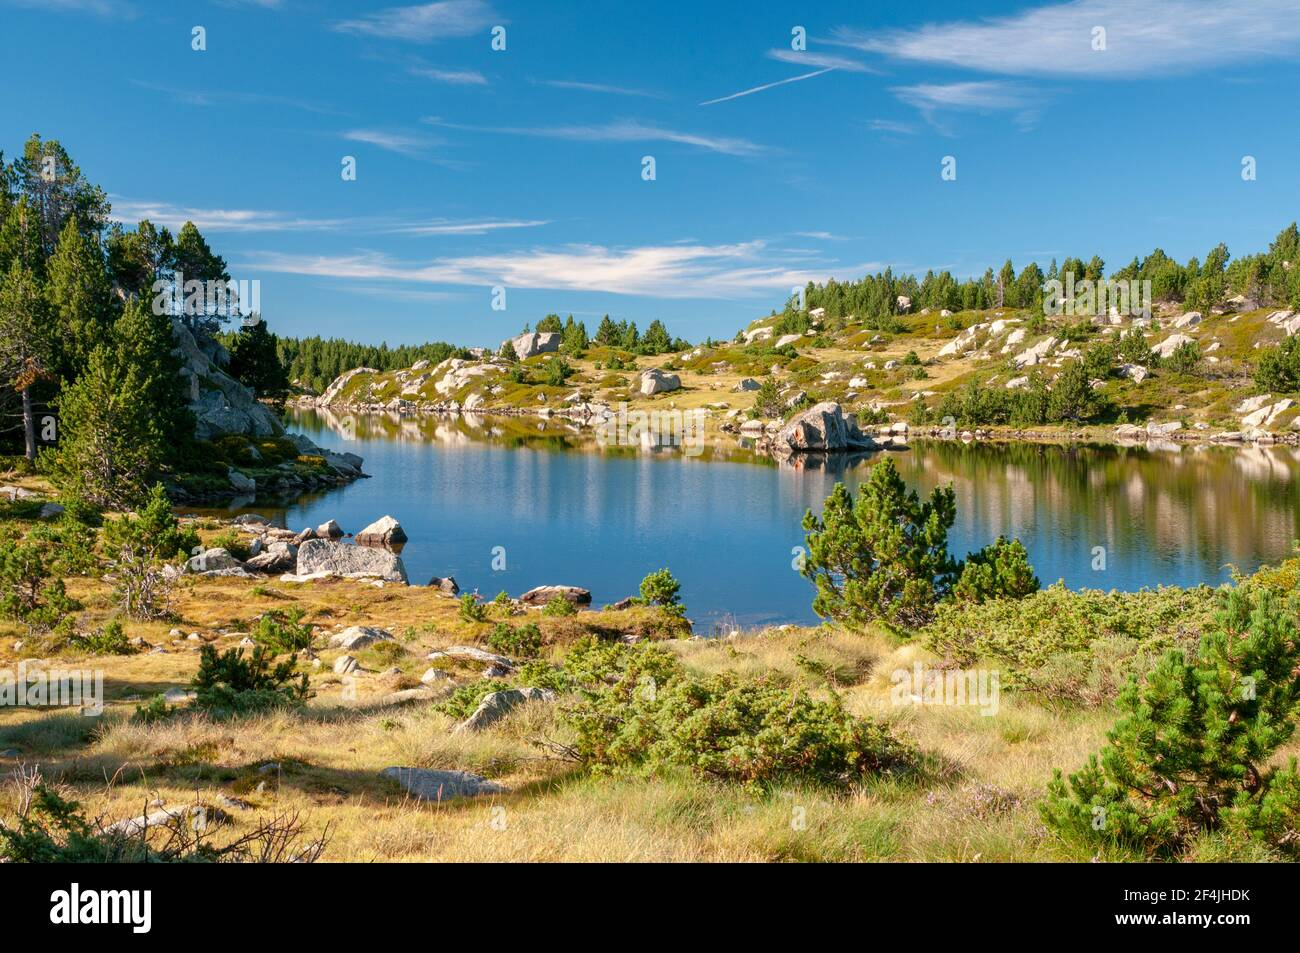 The 'etang sec' lake, part of the Bouillouses lakes, a natural site in the Capcir region, Catalan Pyrenees Regional Natural Park, Pyrenees-Orientales Stock Photo